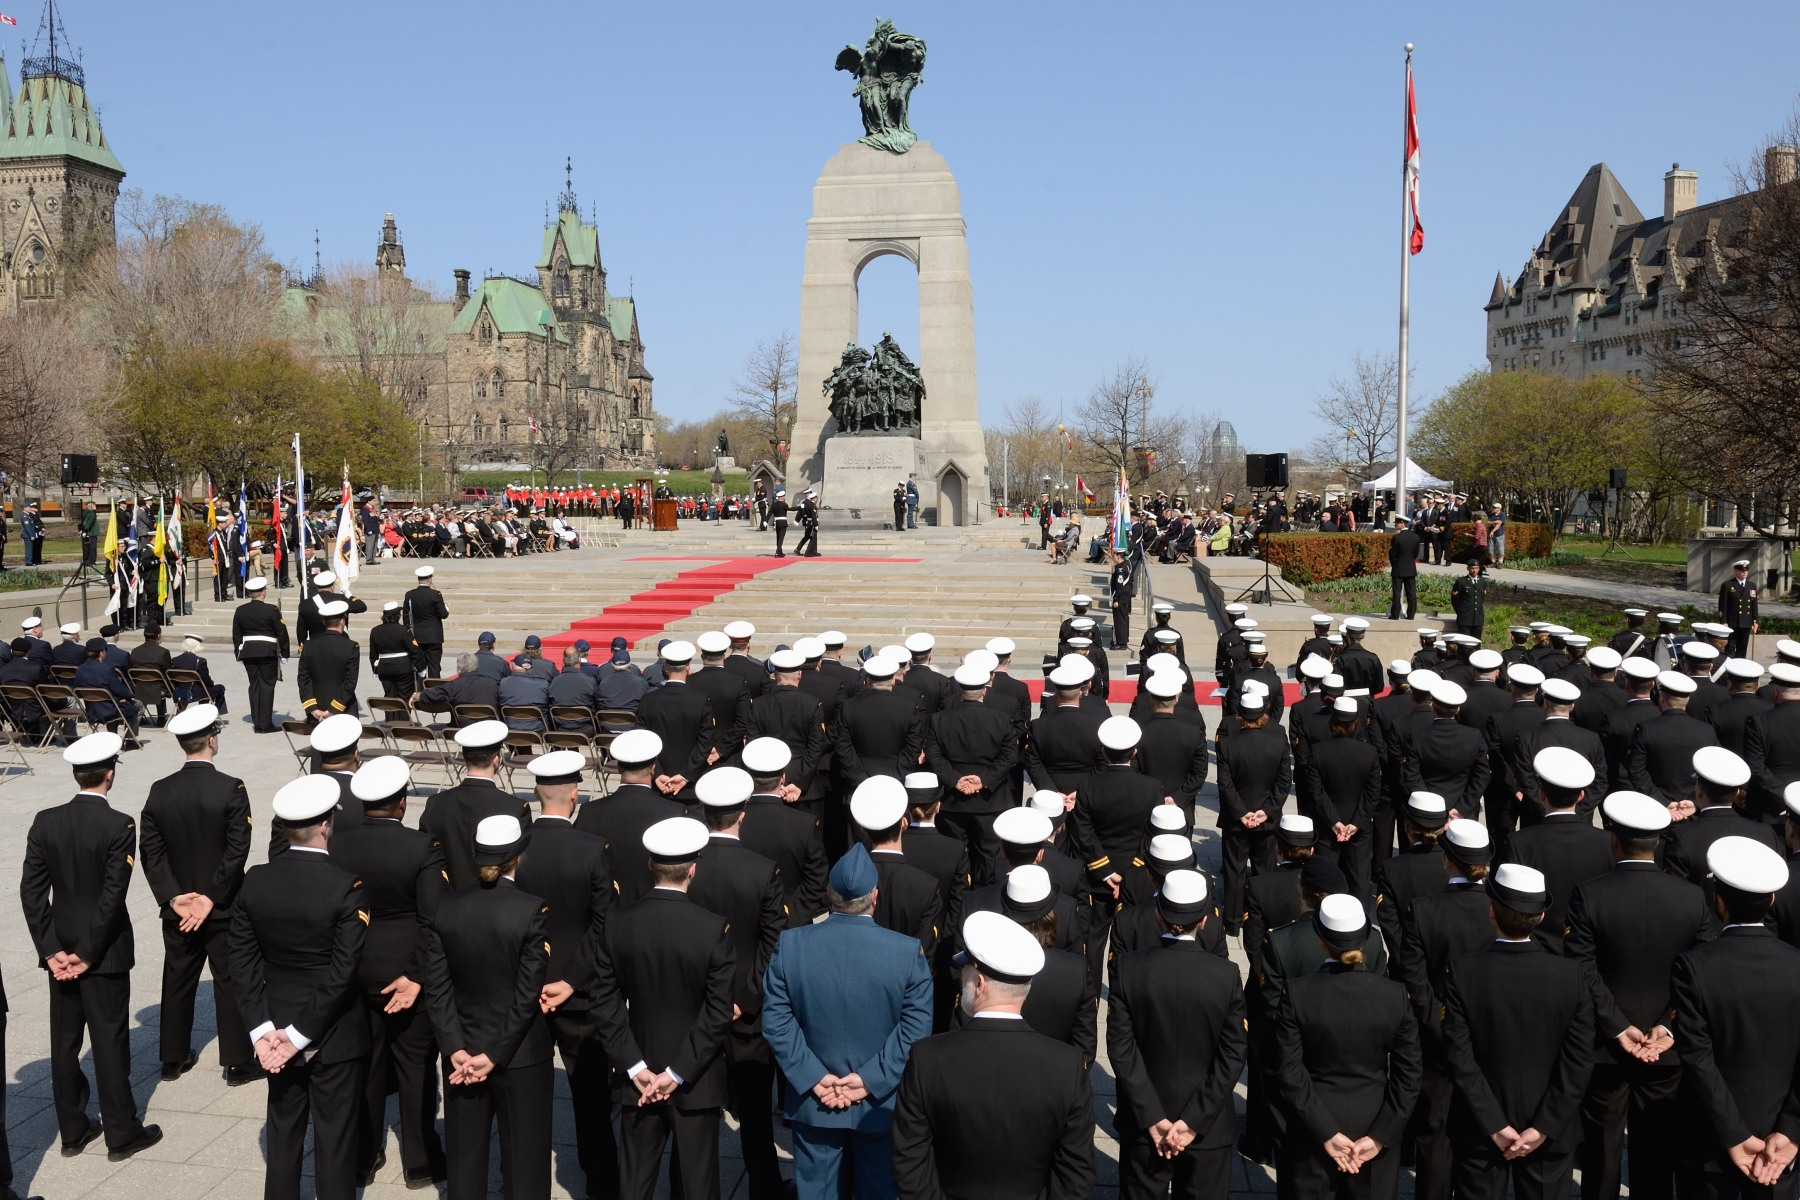 On May 3, 2015, His Excellency the Right Honourable David Johnston, Governor General and